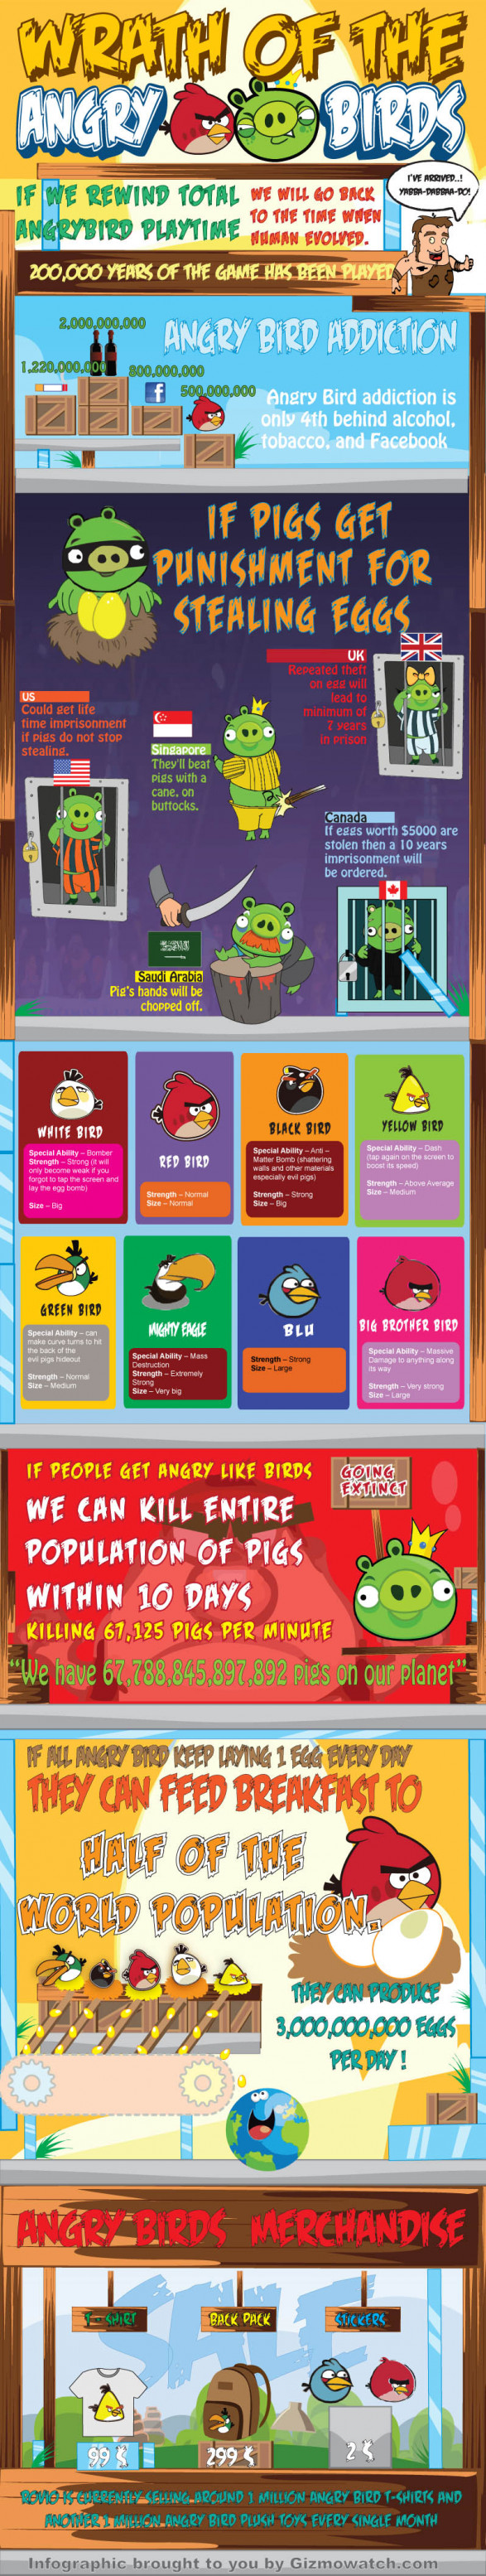 The Wrath Of The Angry Birds [INFOGRAPHIC] november2011damncoolpictures 4f1ea4288514a w587